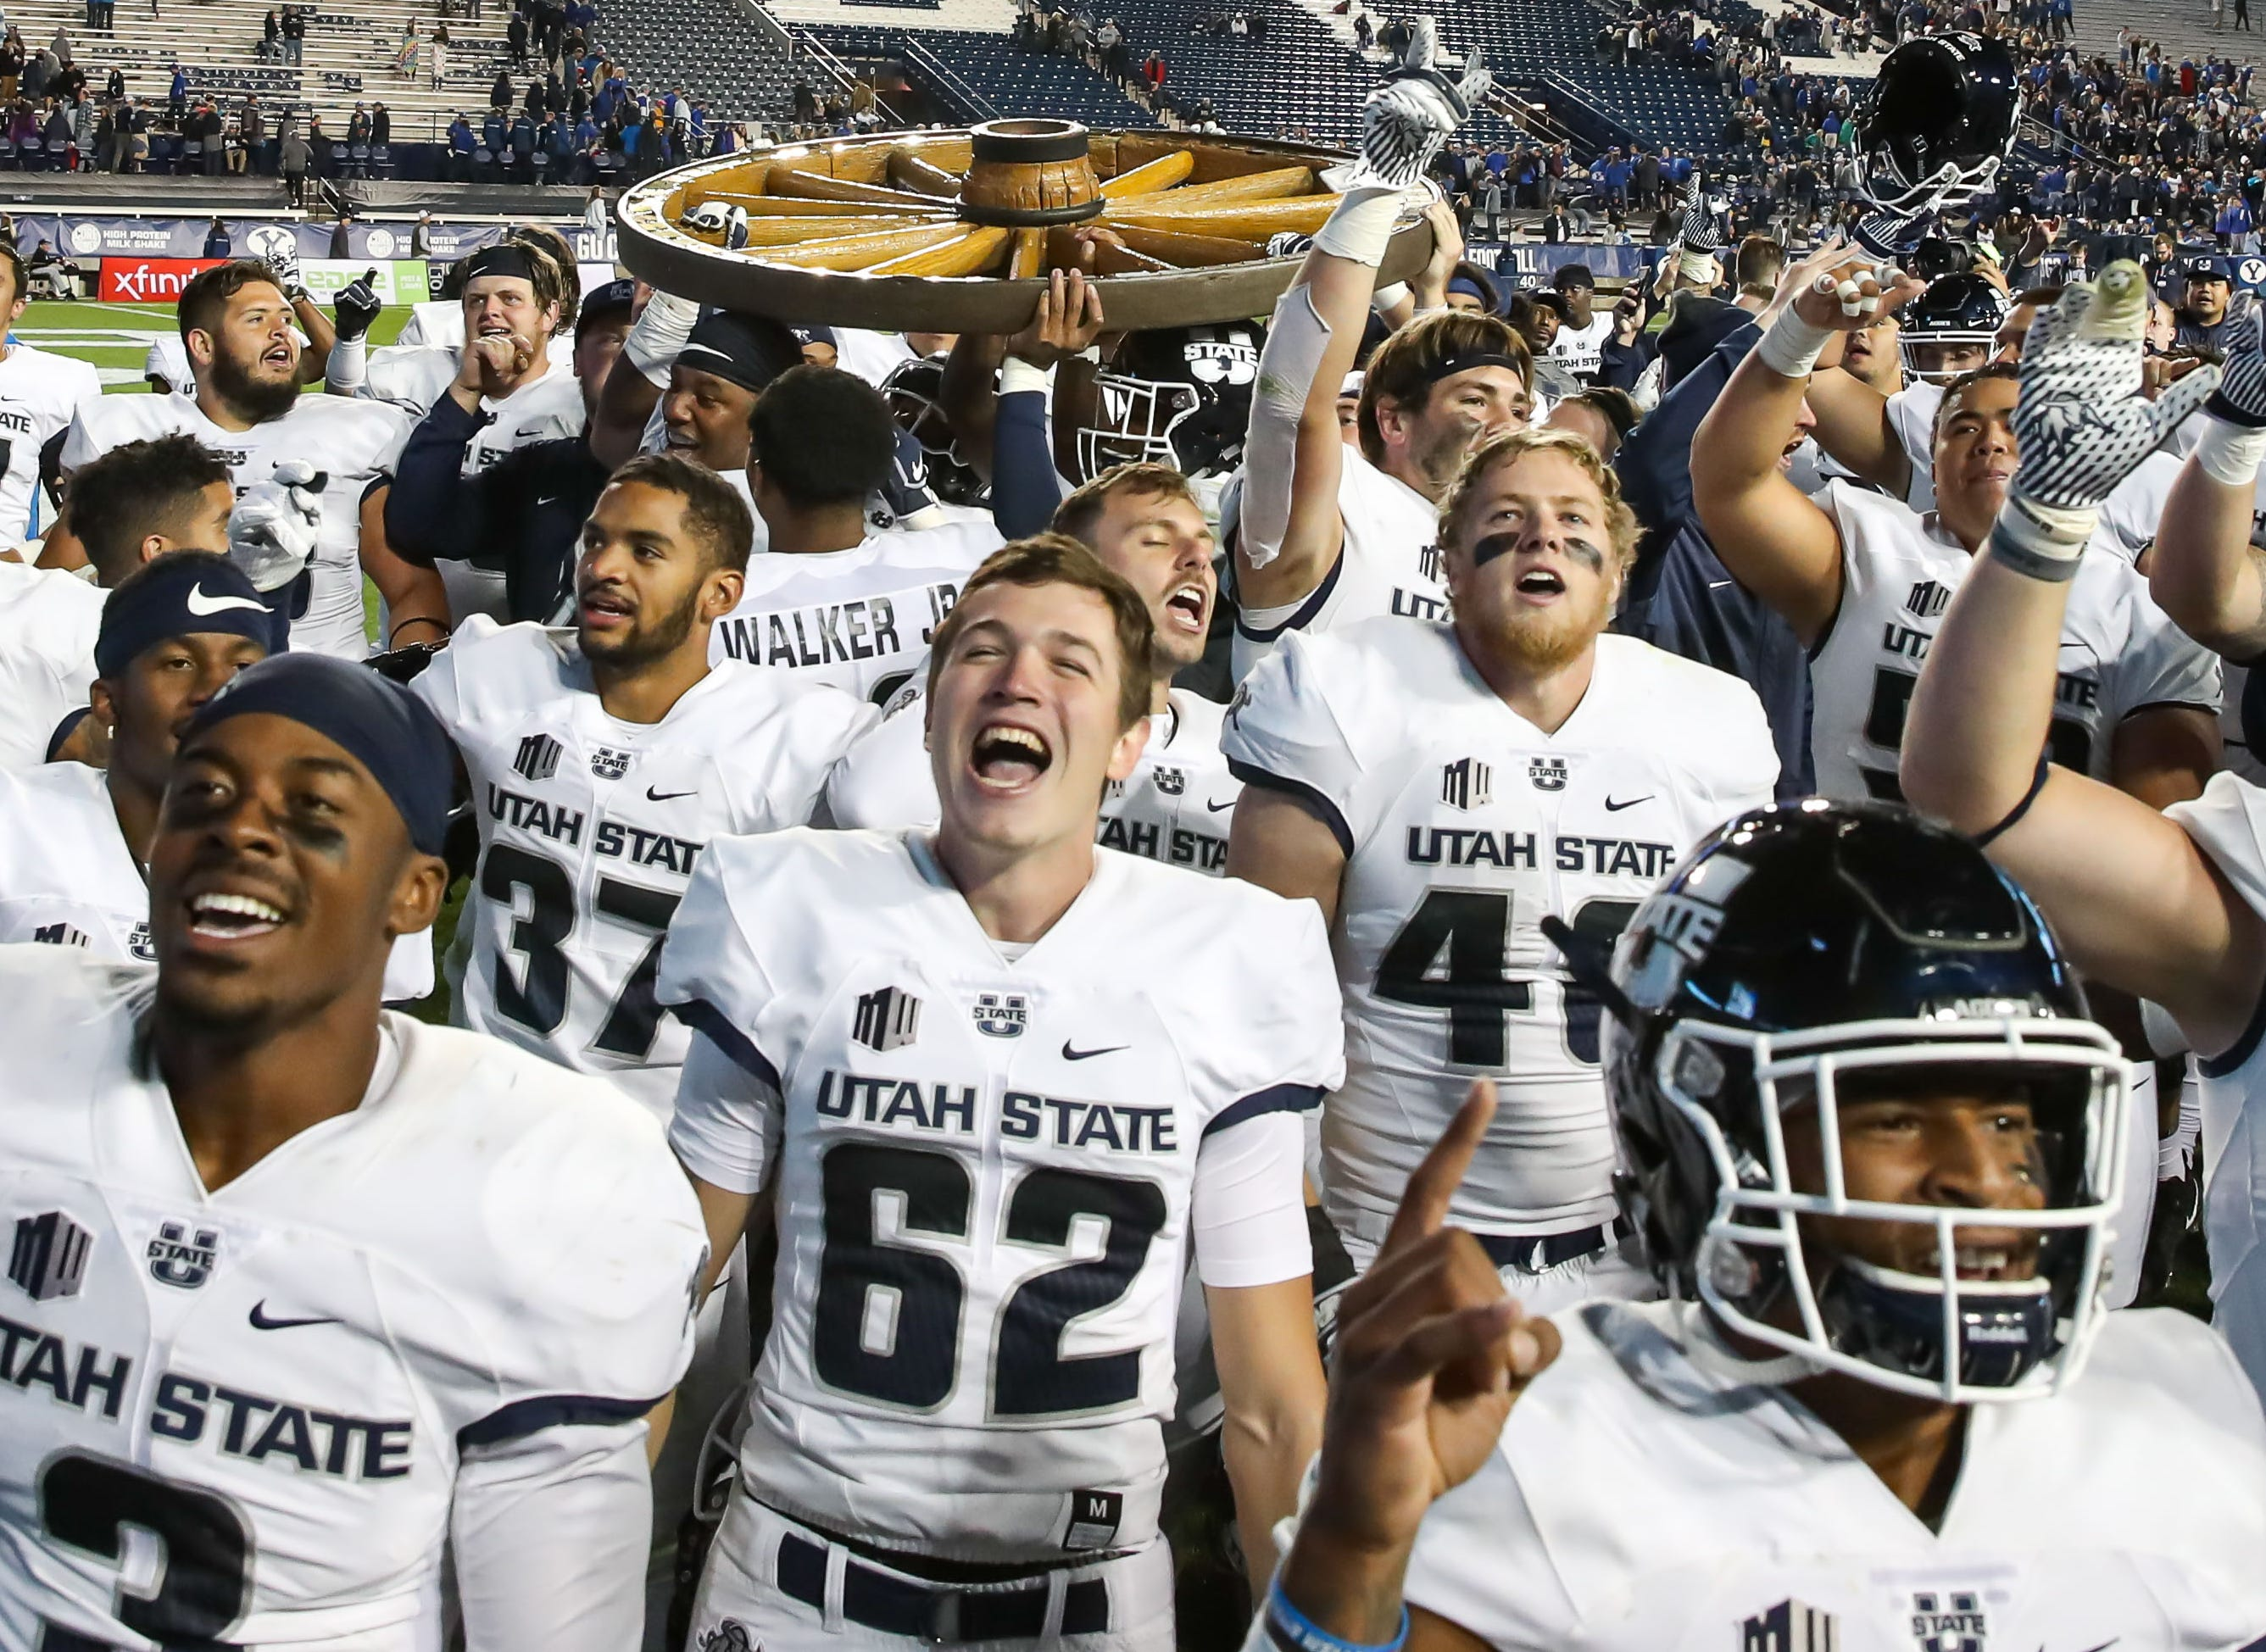 How To Watch Colorado State Utah State Football What Is The Game